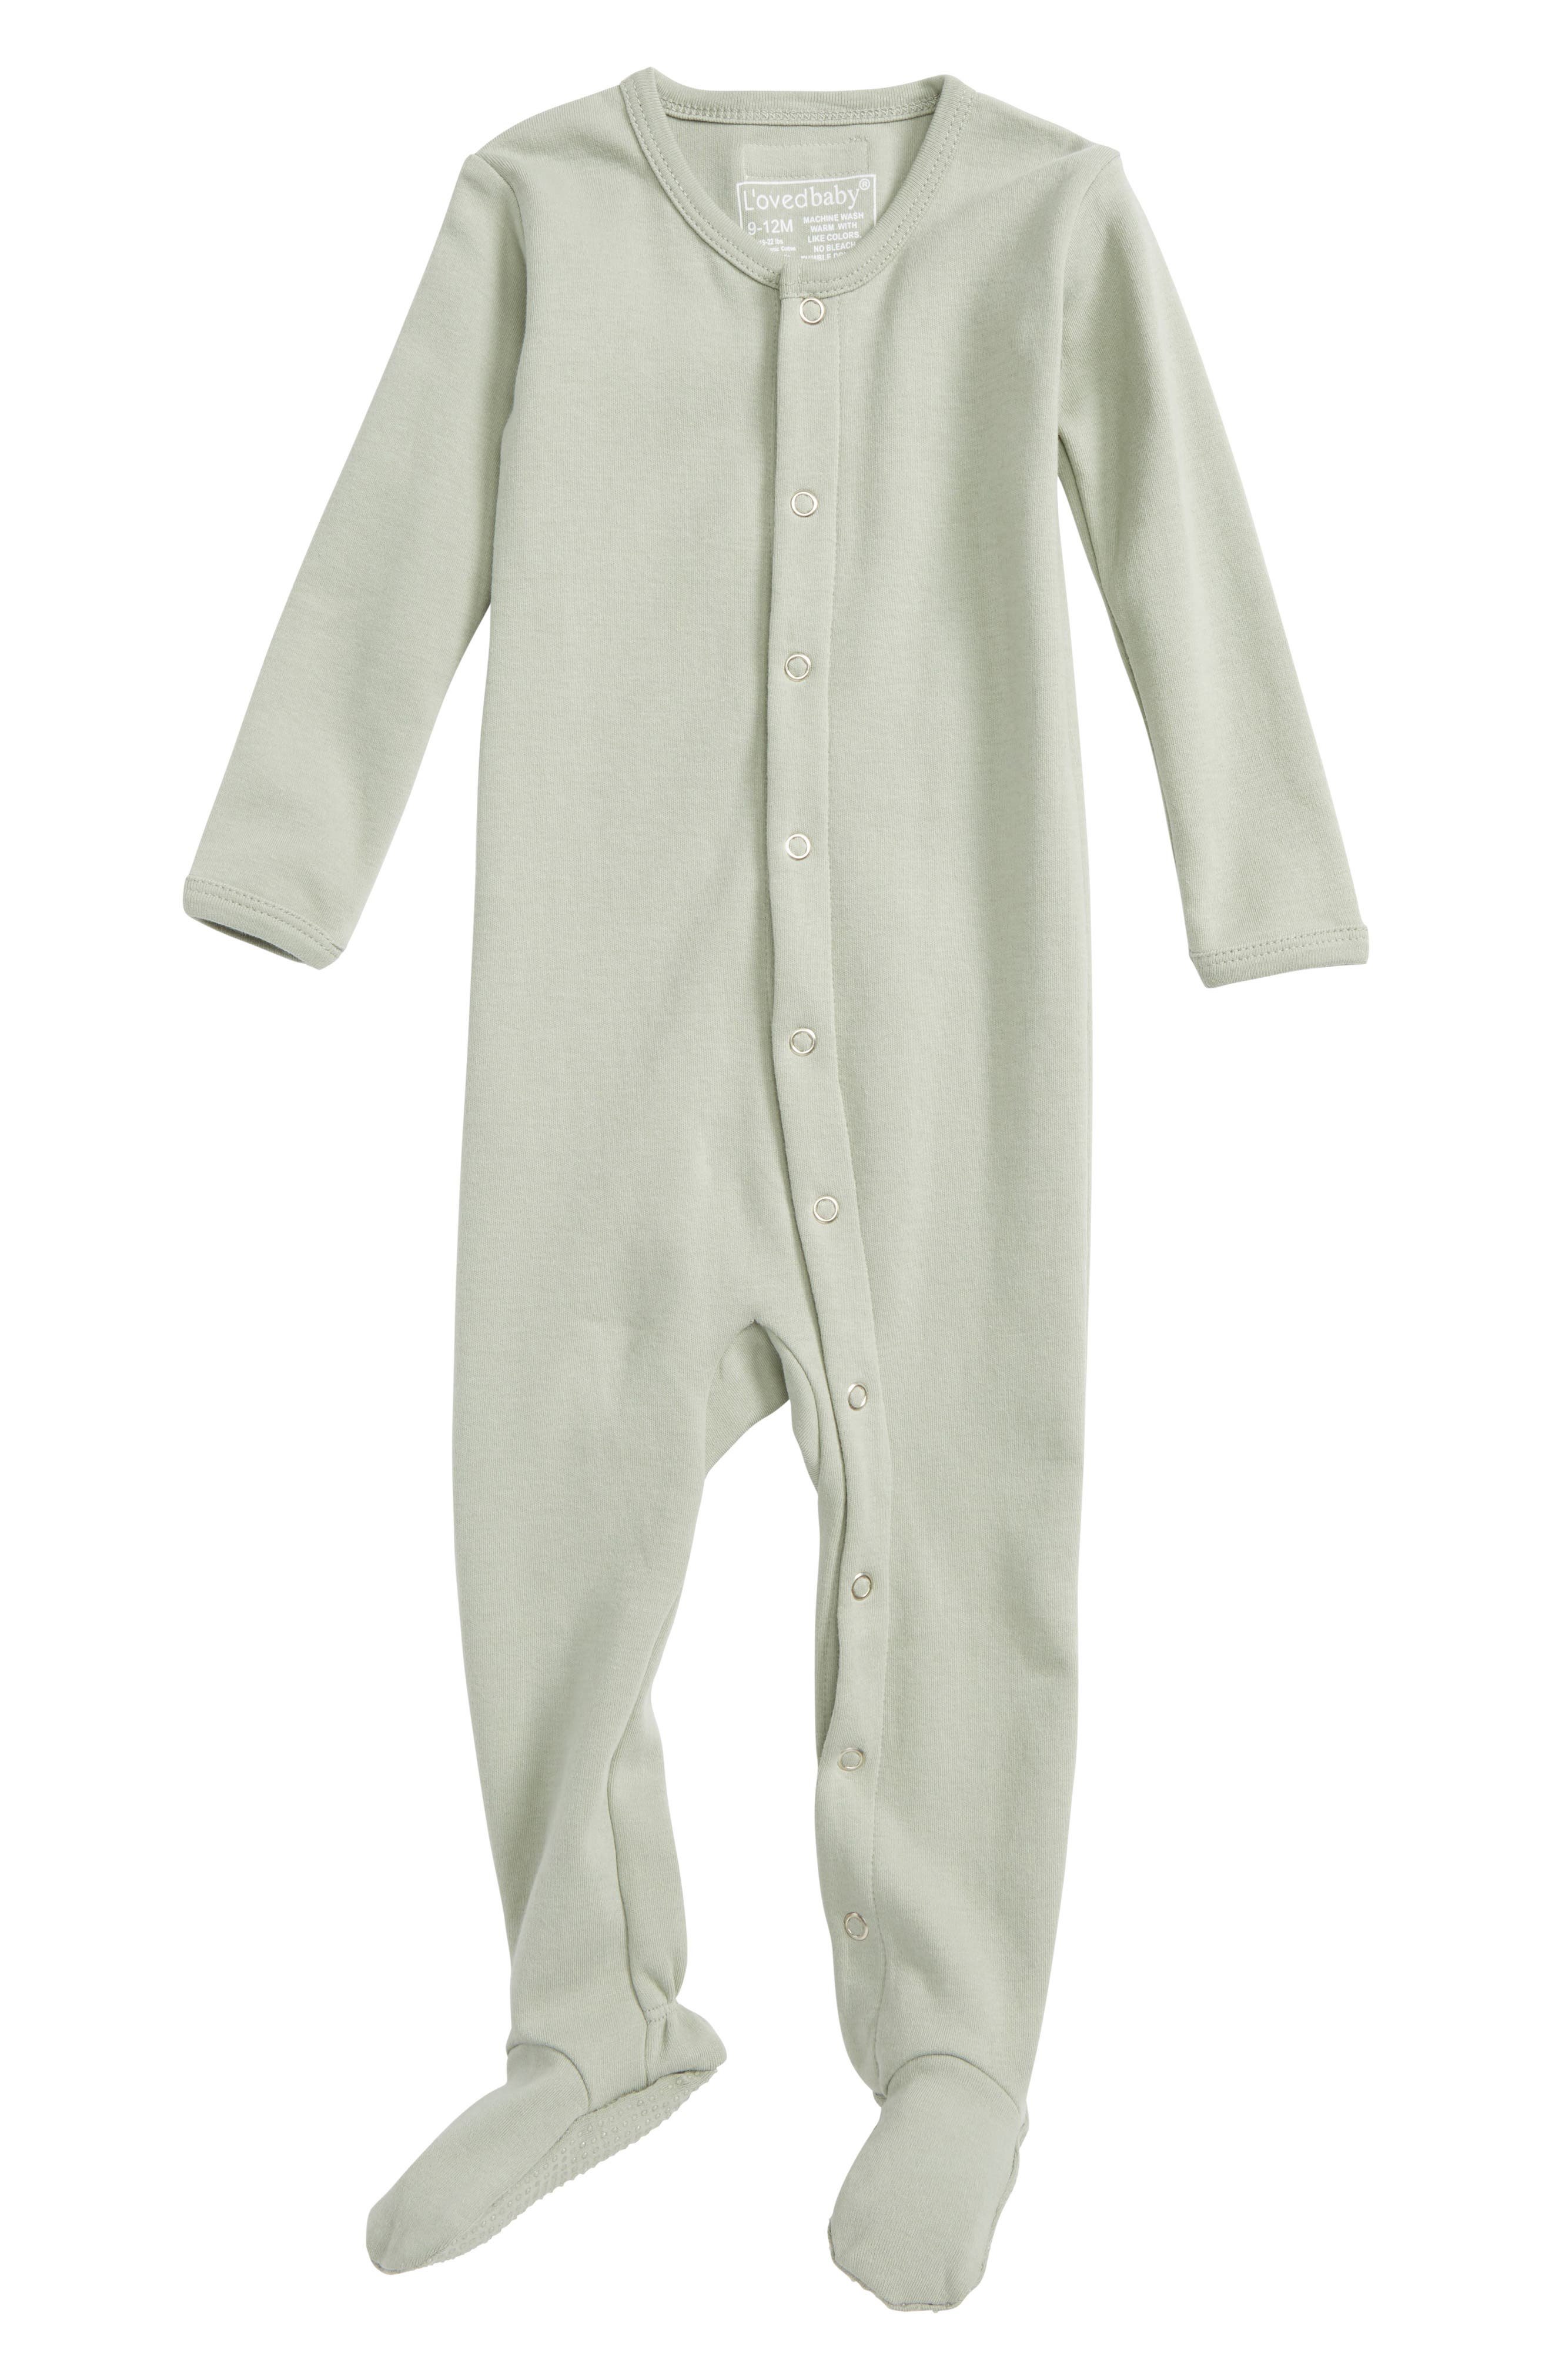 L'ovedbaby Organic Cotton Footie (Baby)